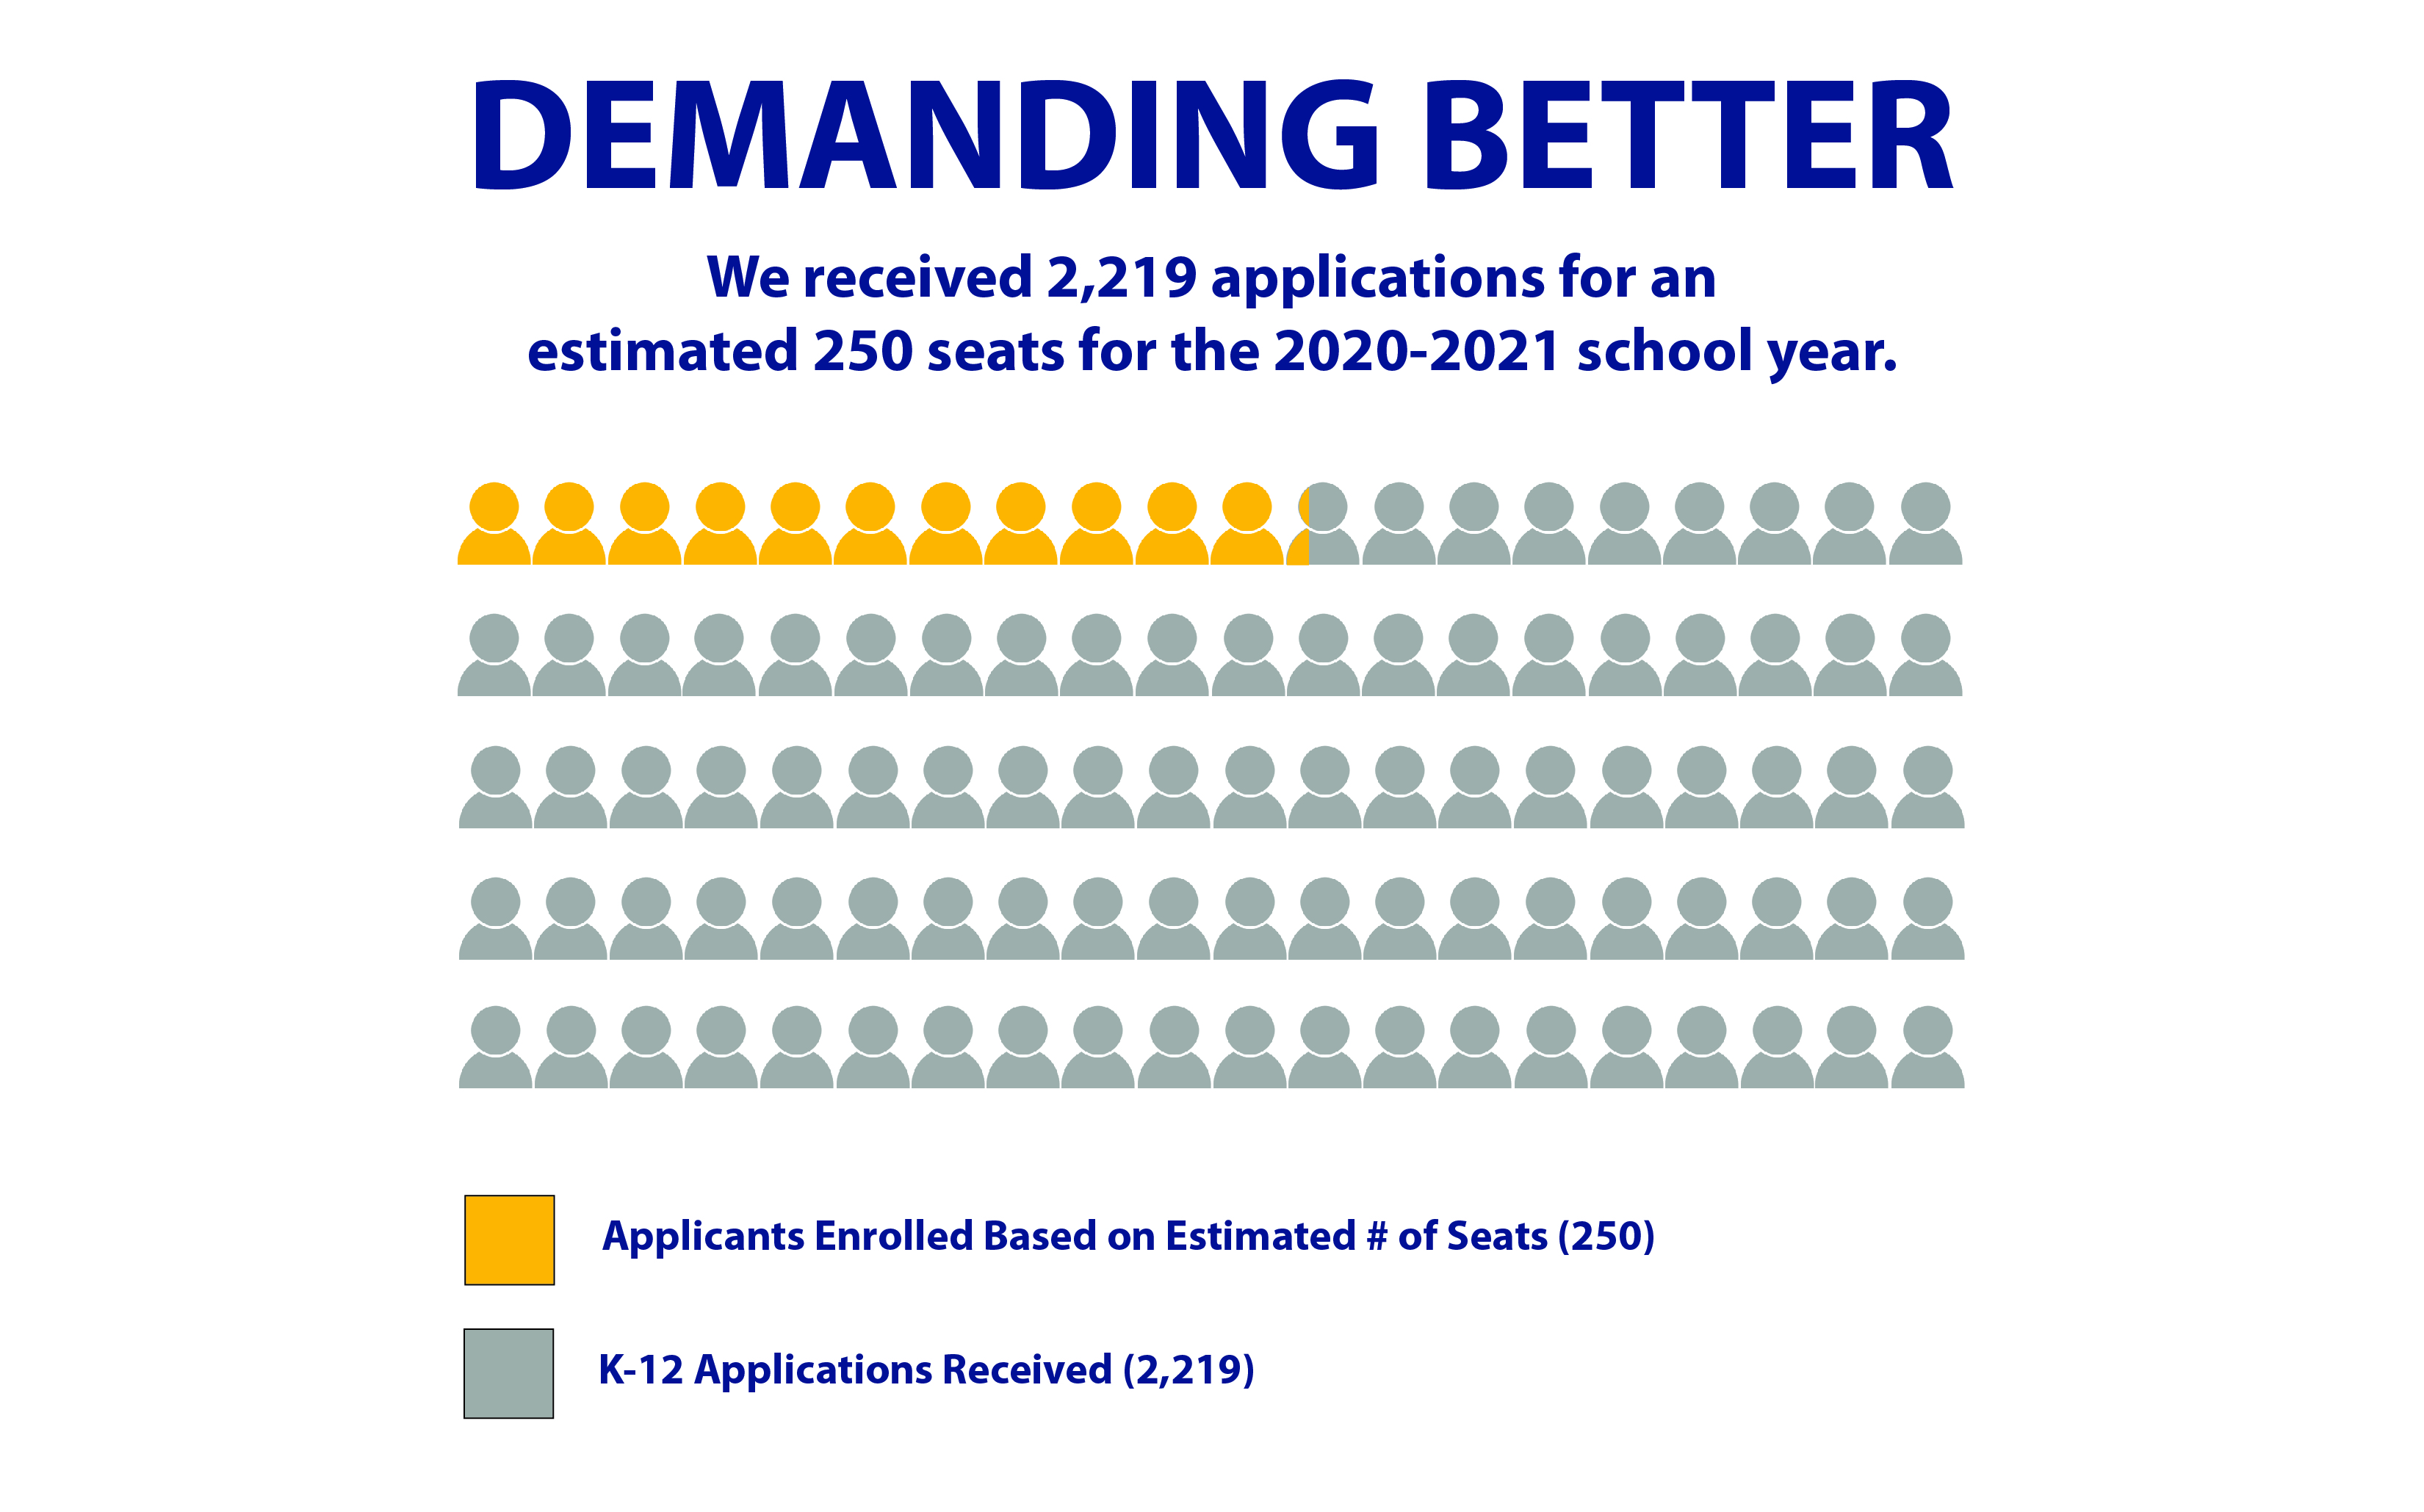 Chart showing the number of applications received versus the number of open seats